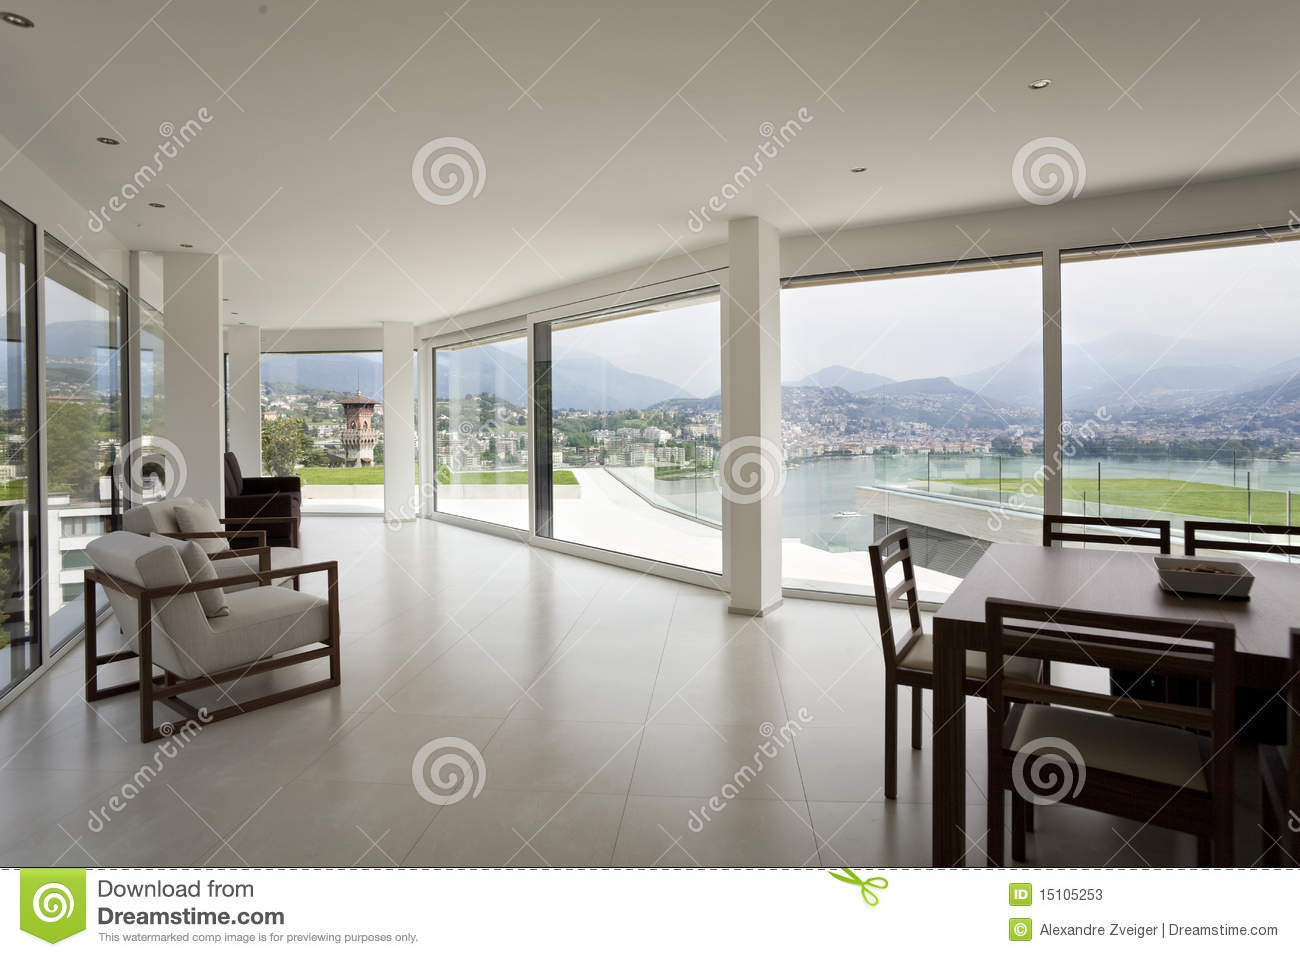 Bel int rieur d 39 une maison moderne photos stock image - Photo maison contemporaine interieur ...